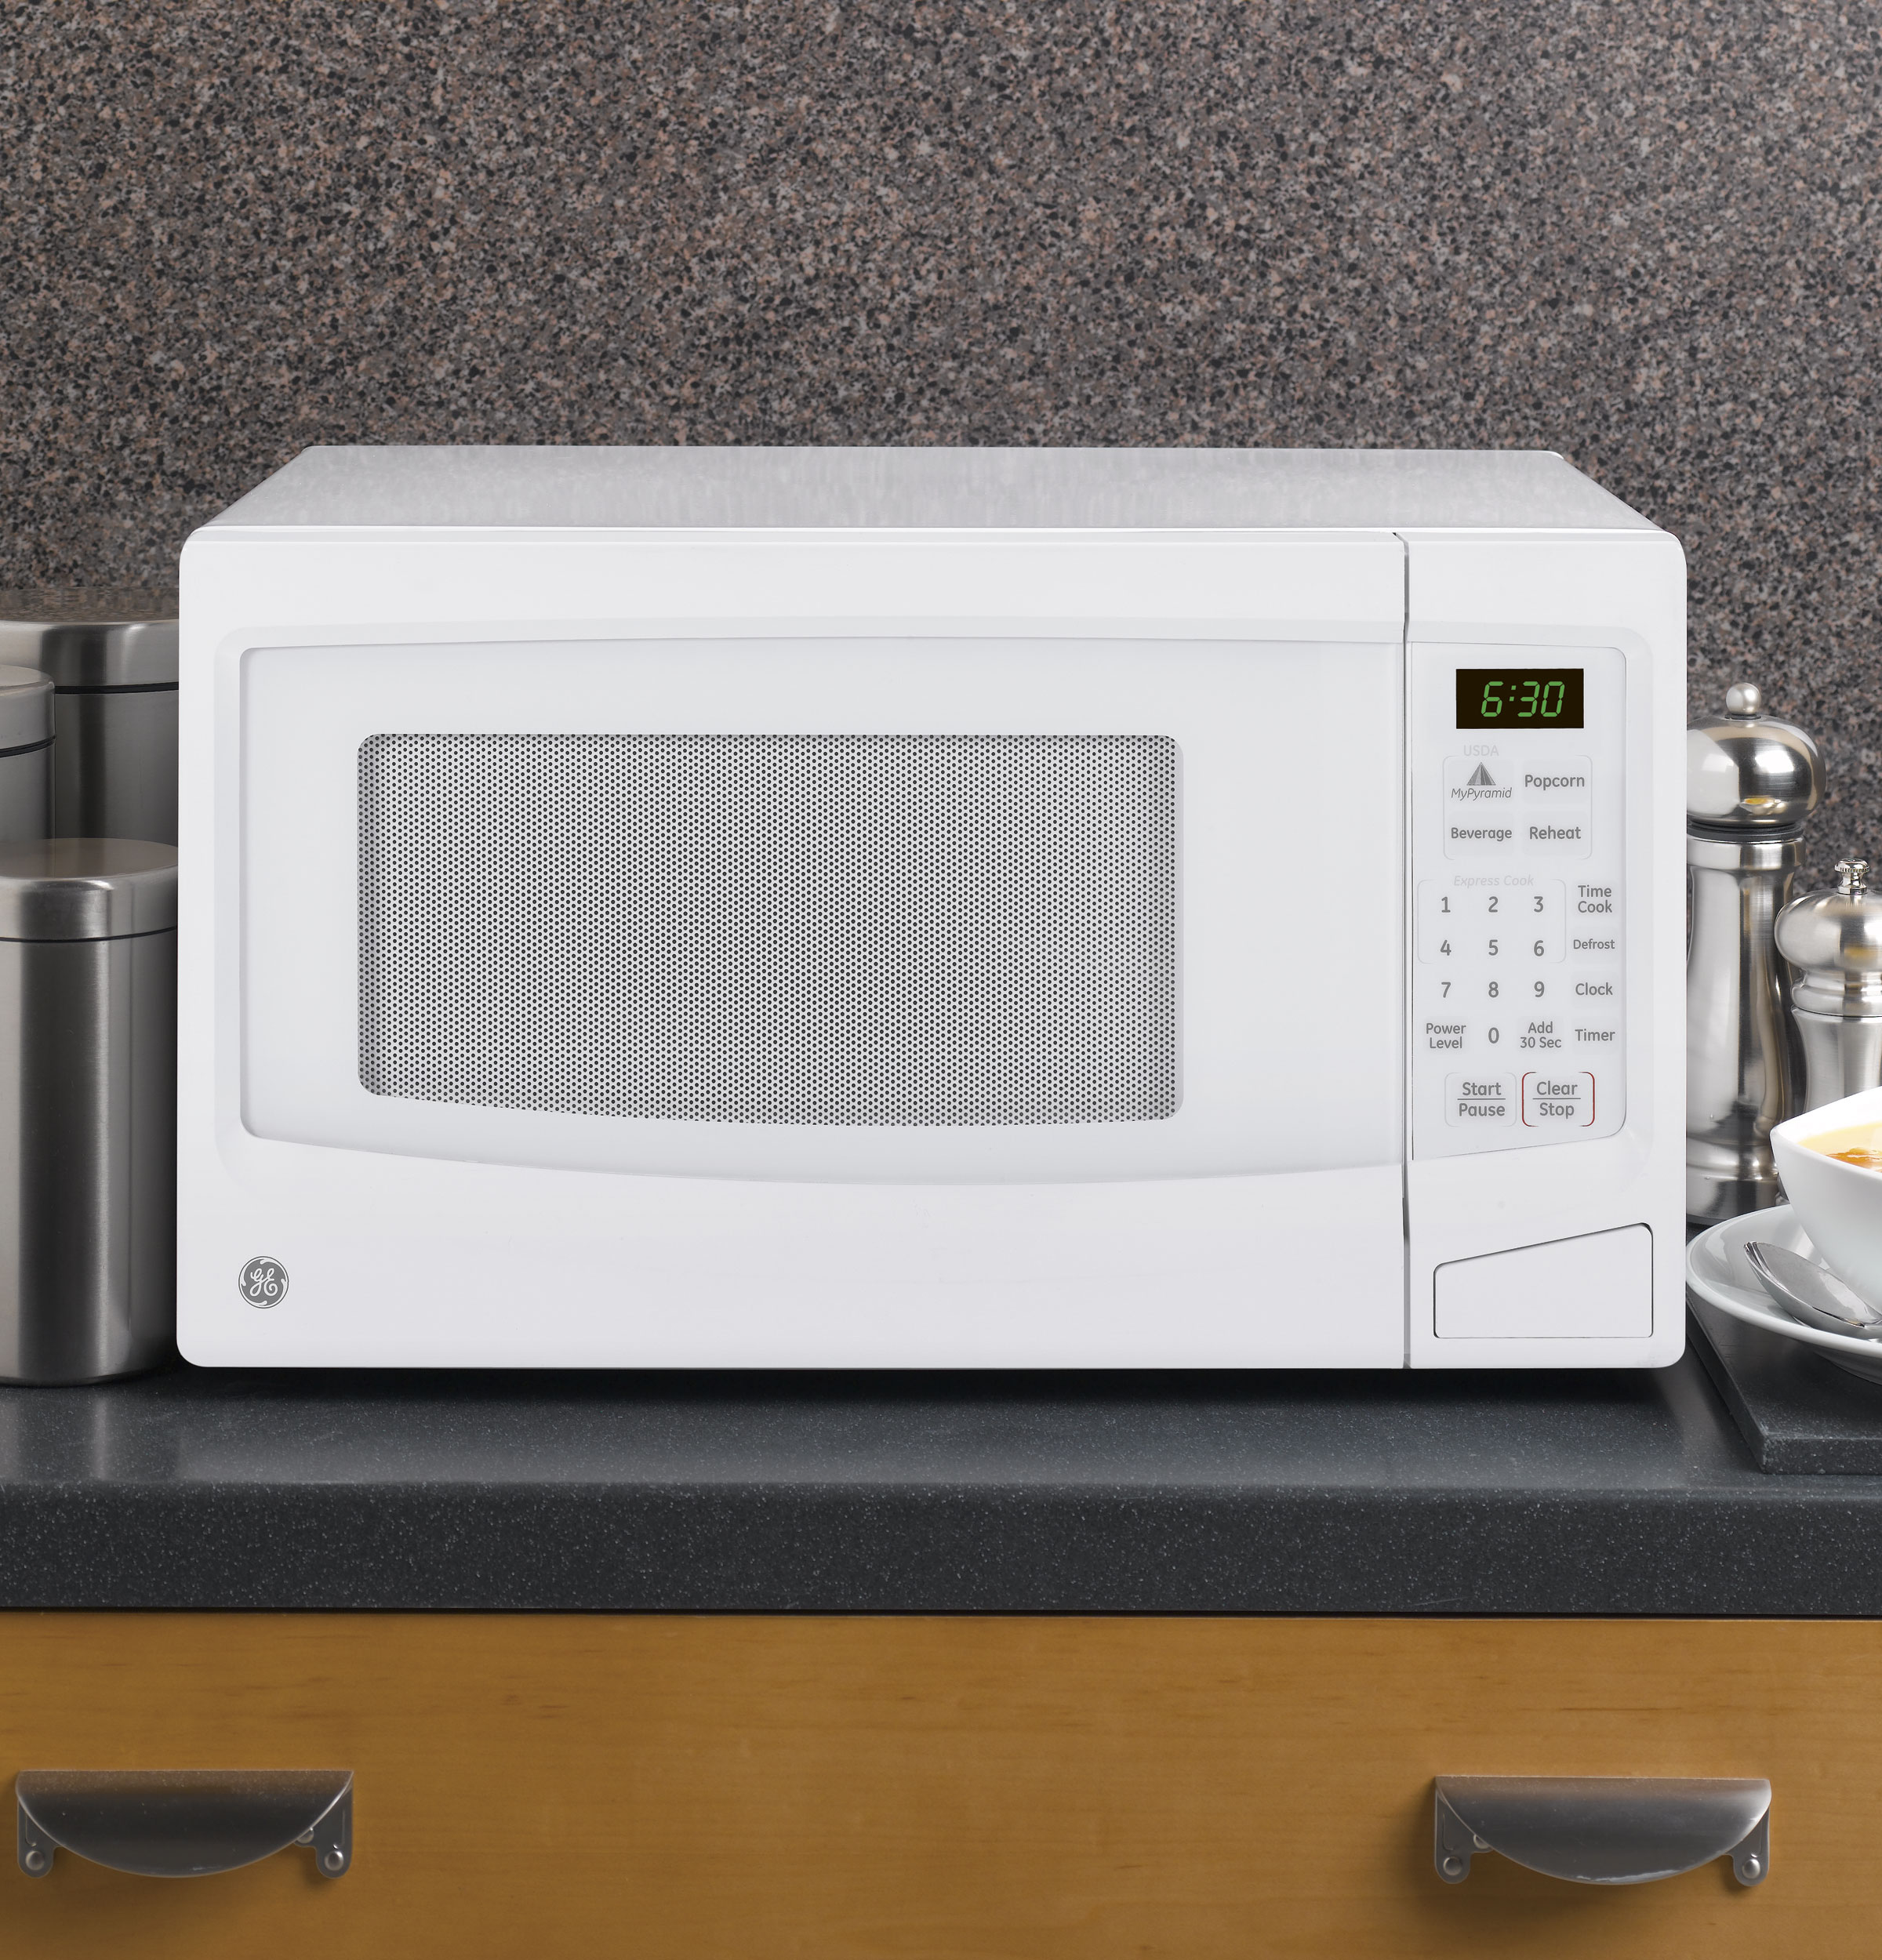 owners manual for ge microwave oven